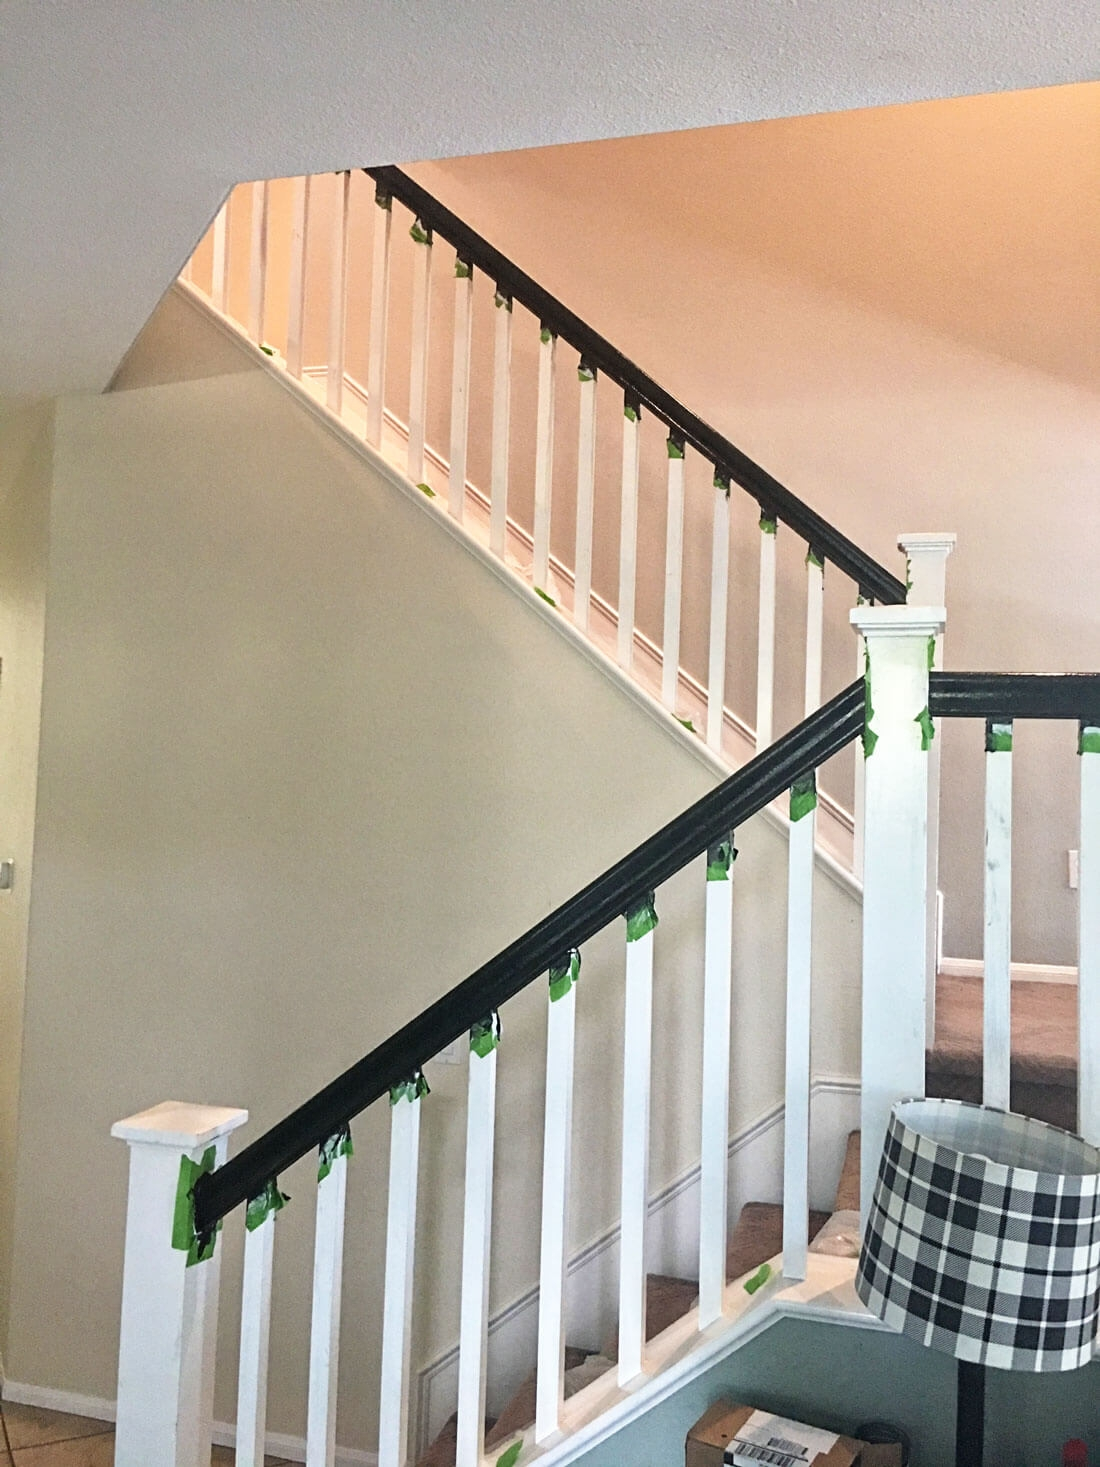 How To Paint Your Stair Railing And Banister Black From 30Daysblog | Black Banister White Spindles | Black Railing | Funky | Victorian | Iron Spindle White Catwalk Brown Railing | White Mahogany Hand Rail Oak